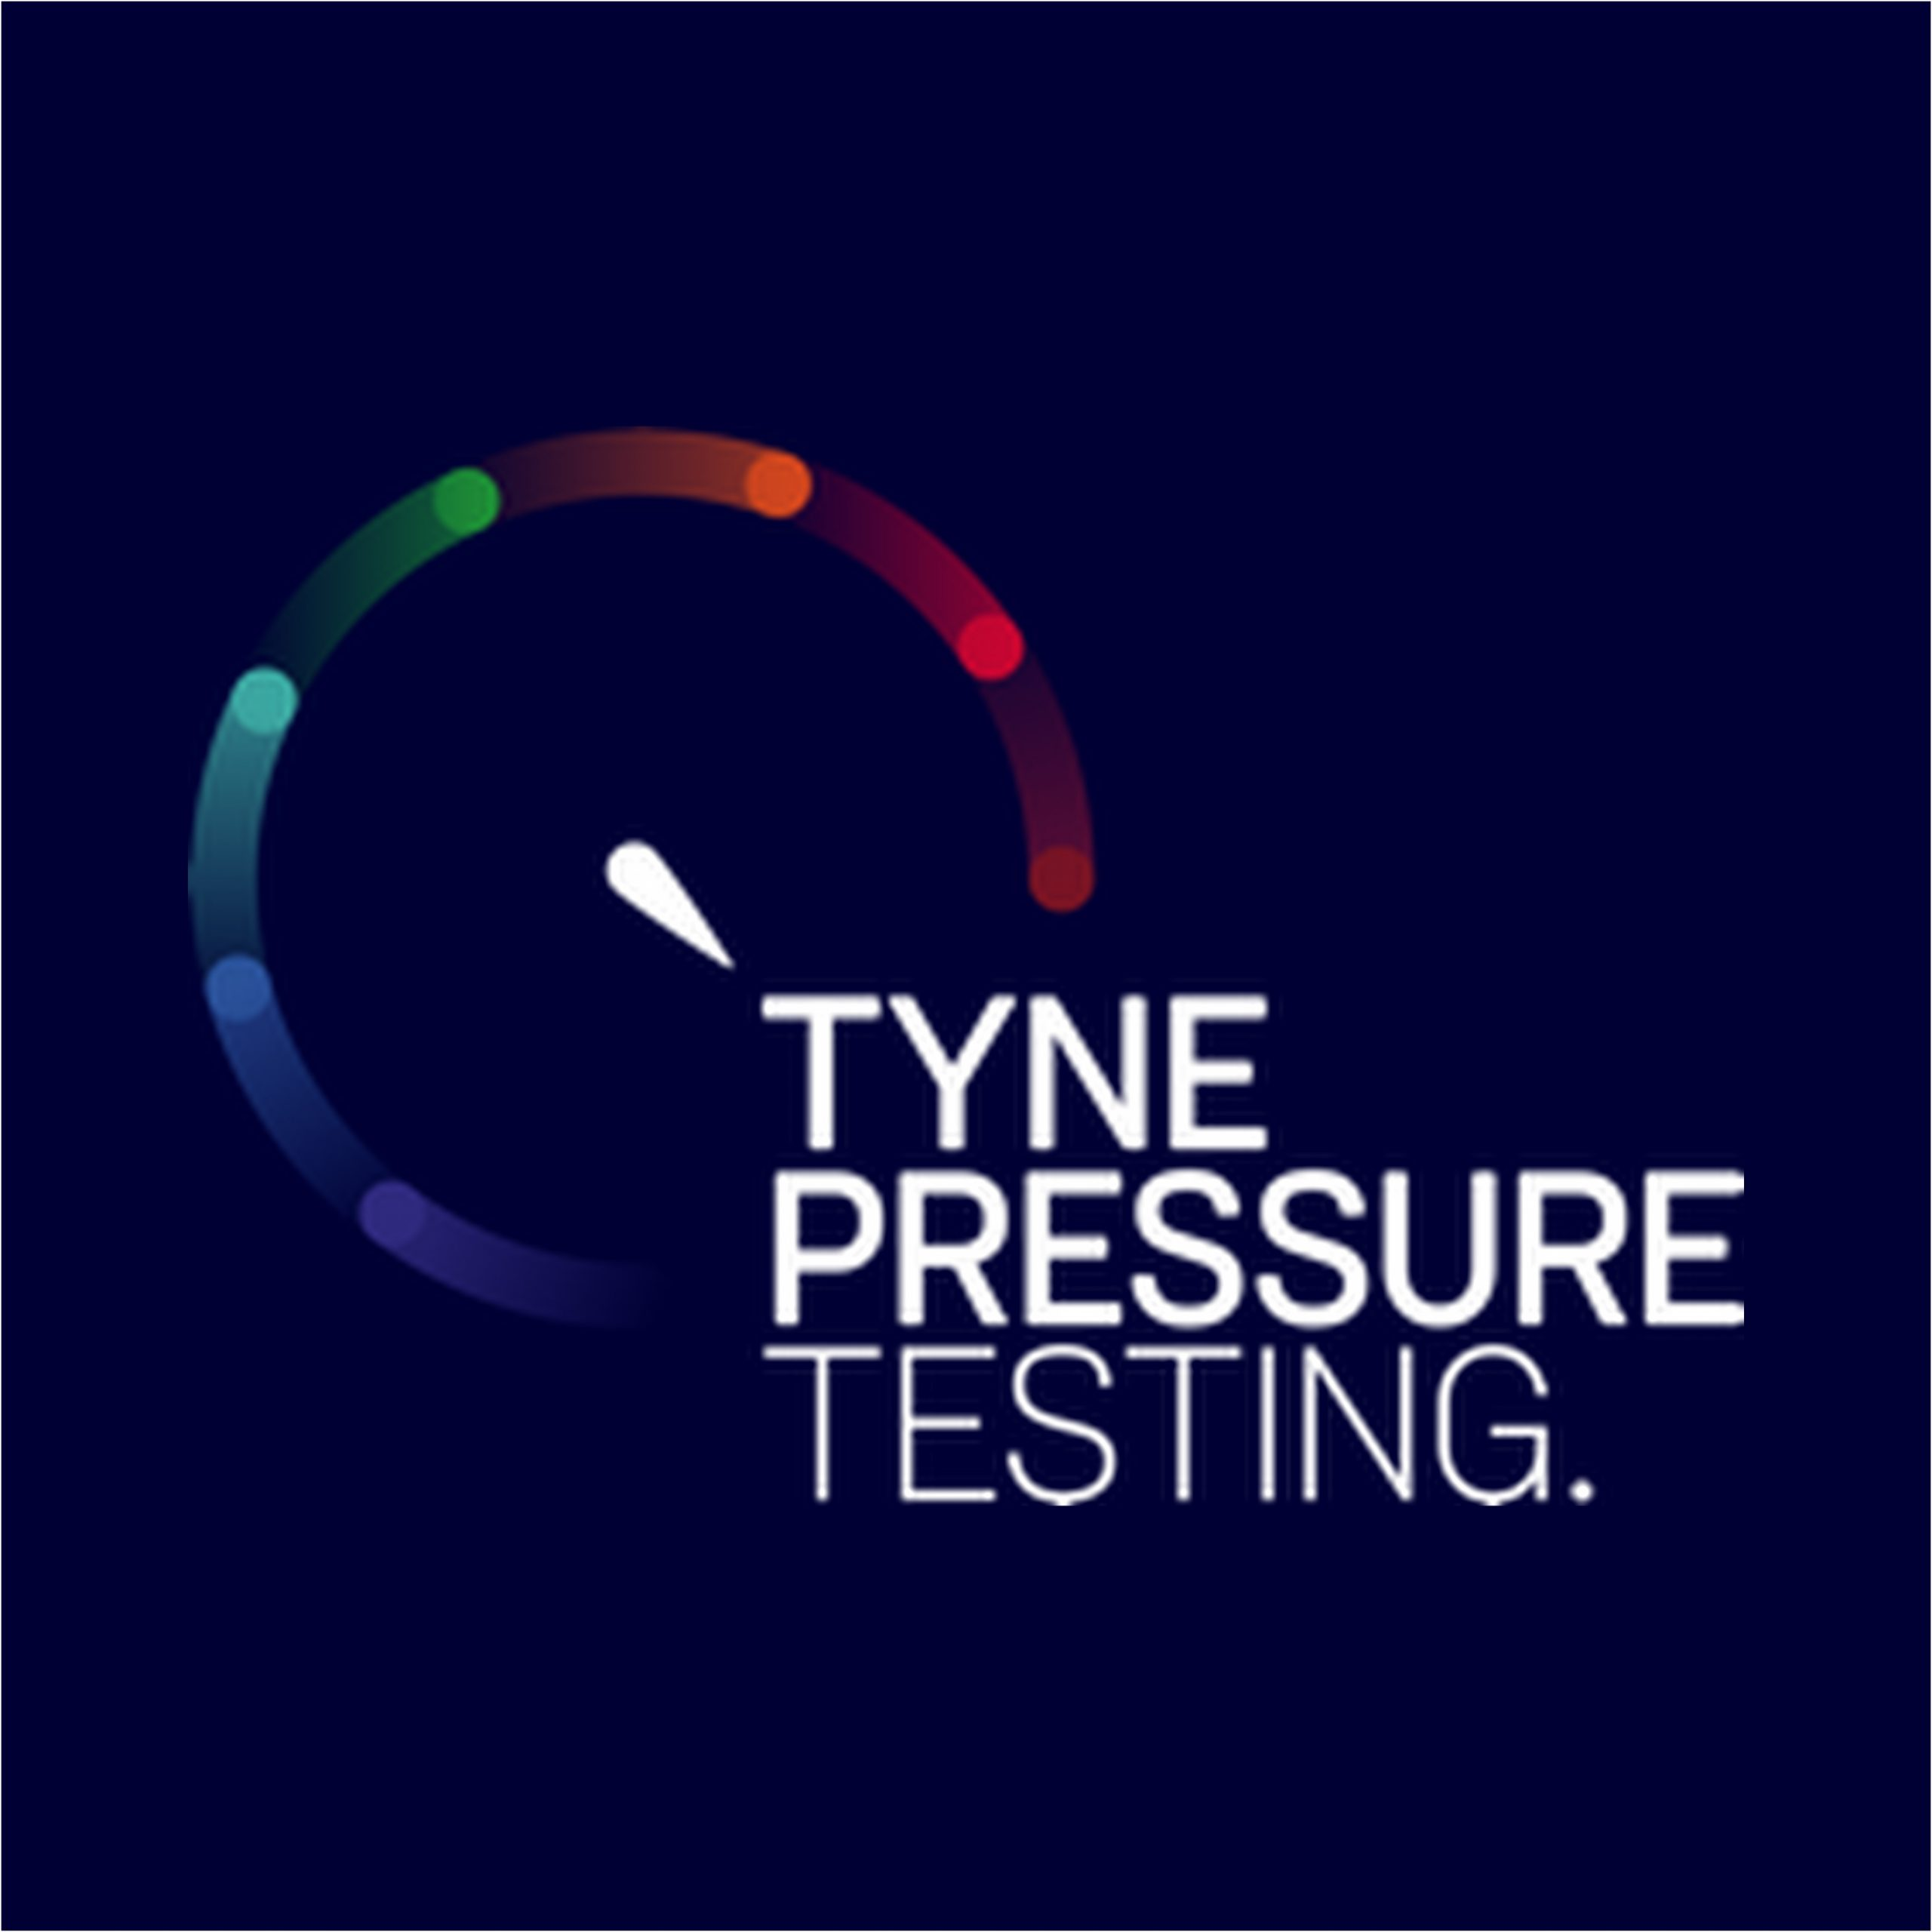 TYNE PRESSURE TESTING LOGO scaled